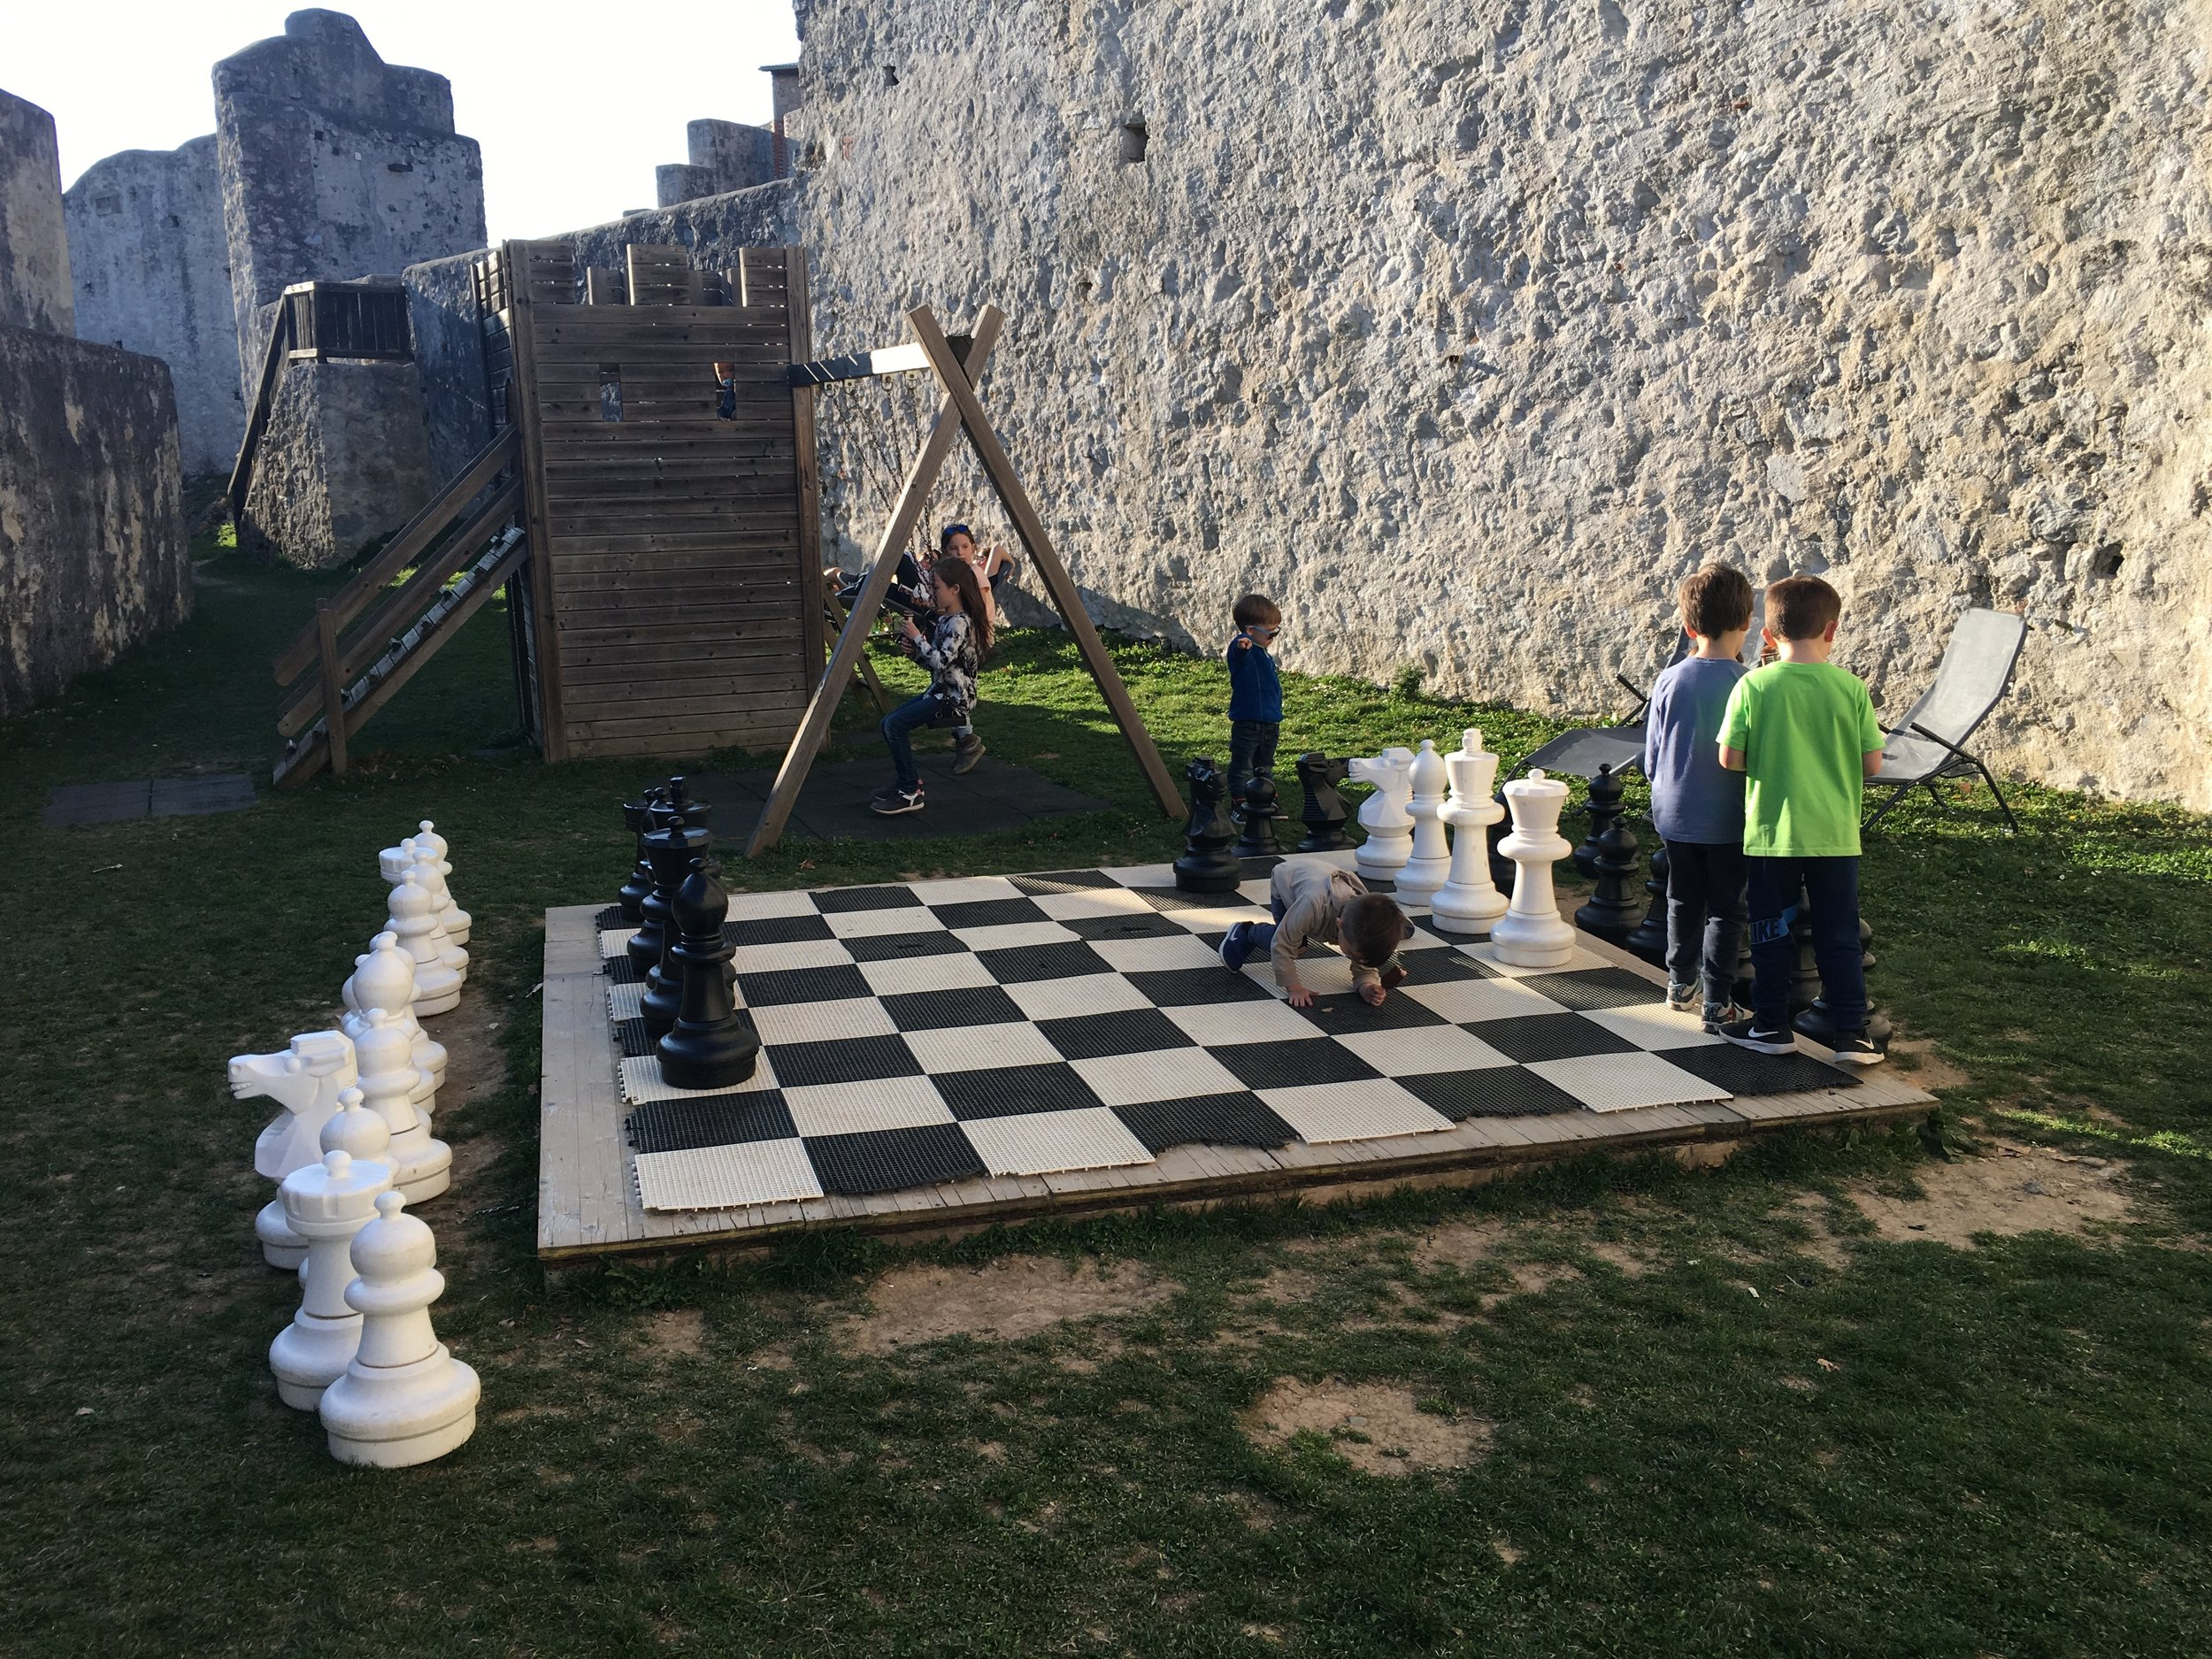 Visiting an old castle in Celje. The kids loved the massive chess board